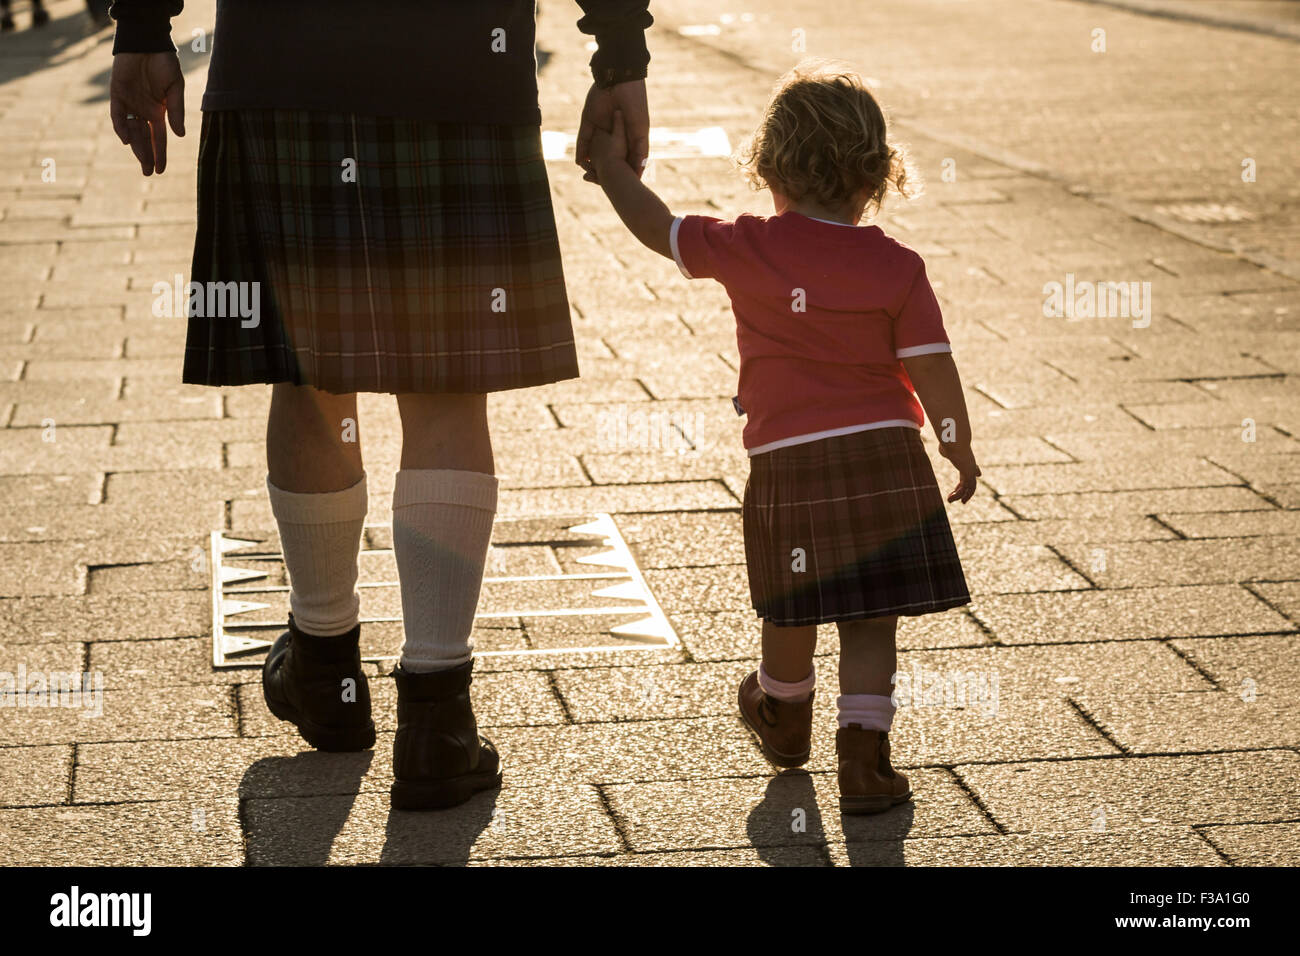 Rear view of man and child wearing kilts; national dress of Scotland. Stock Photo